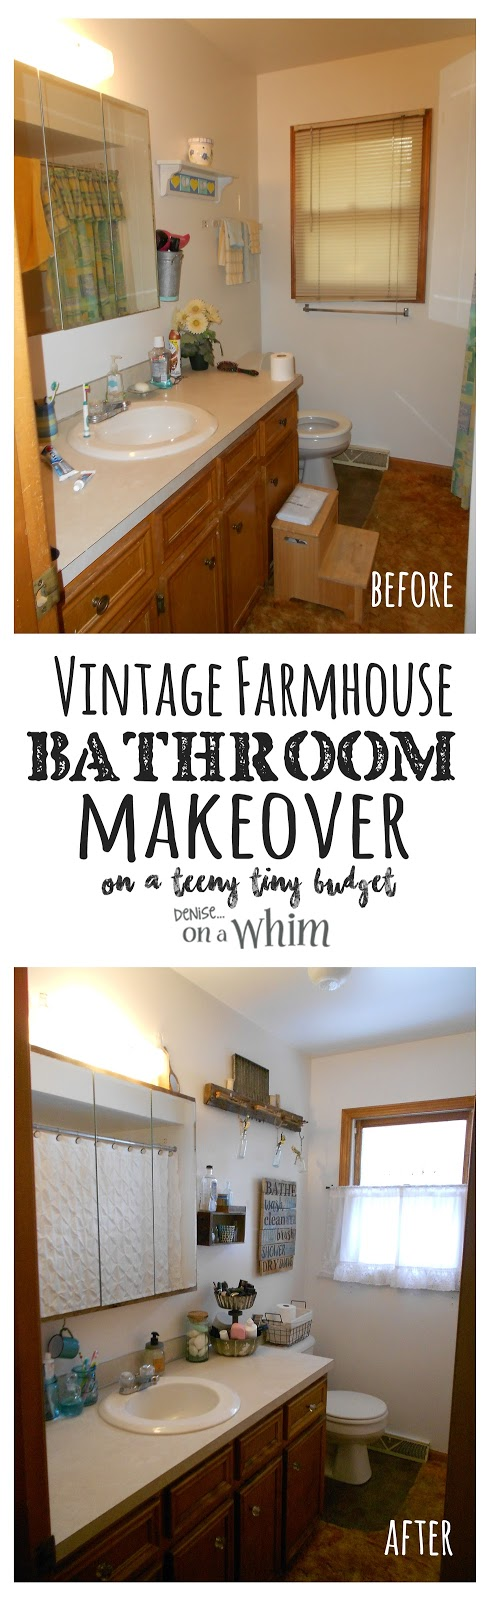 Vintage Farmhouse Bathroom Makeover - the Before and After | Denise on a Whim